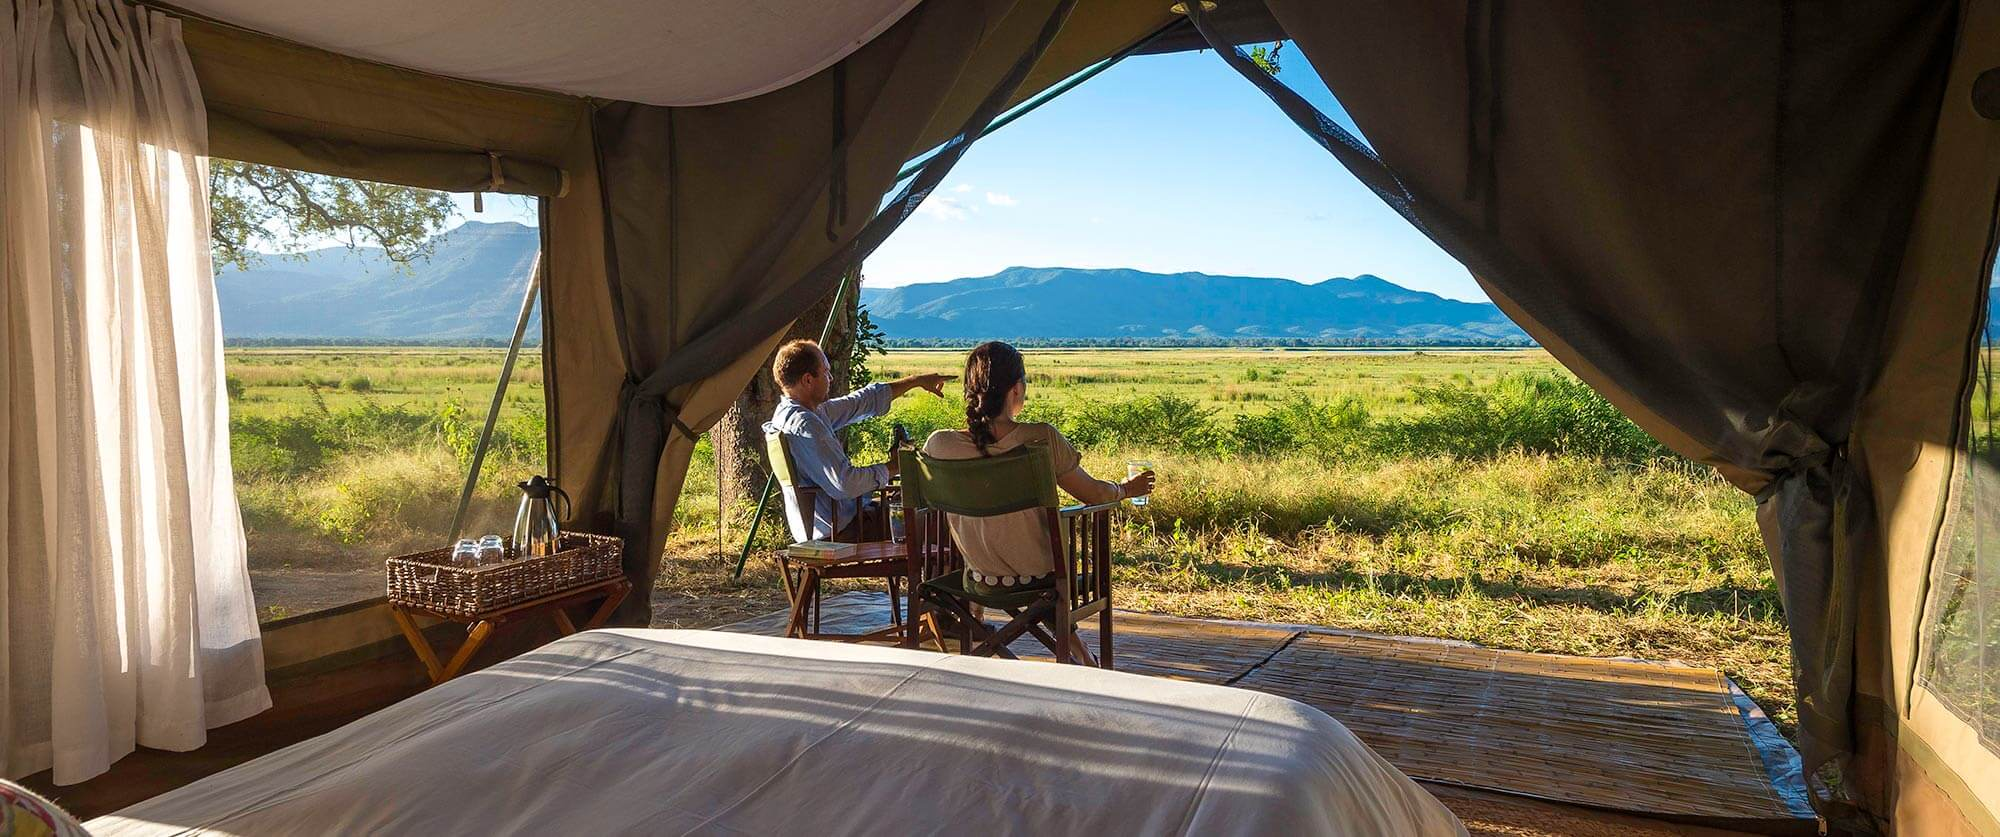 View from Tent - John's Camp Zimbabwe - South Luangwa, Mana Pools, and Victoria Falls Adventure Package